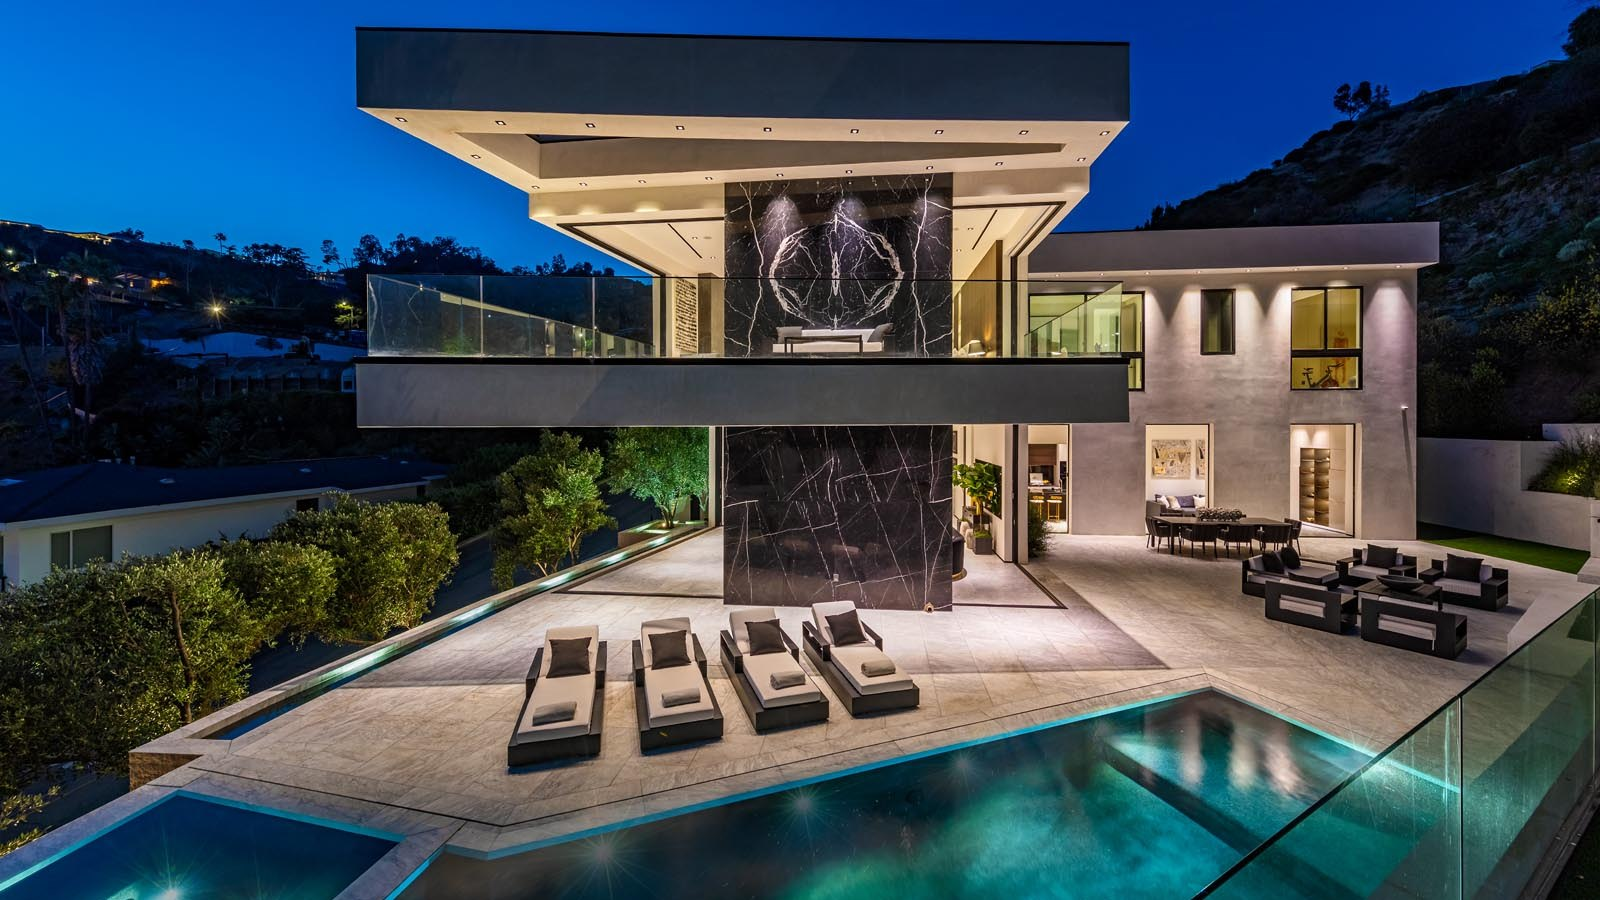 North Doheny Drive Residence in Los Angeles by XTEN Architecture